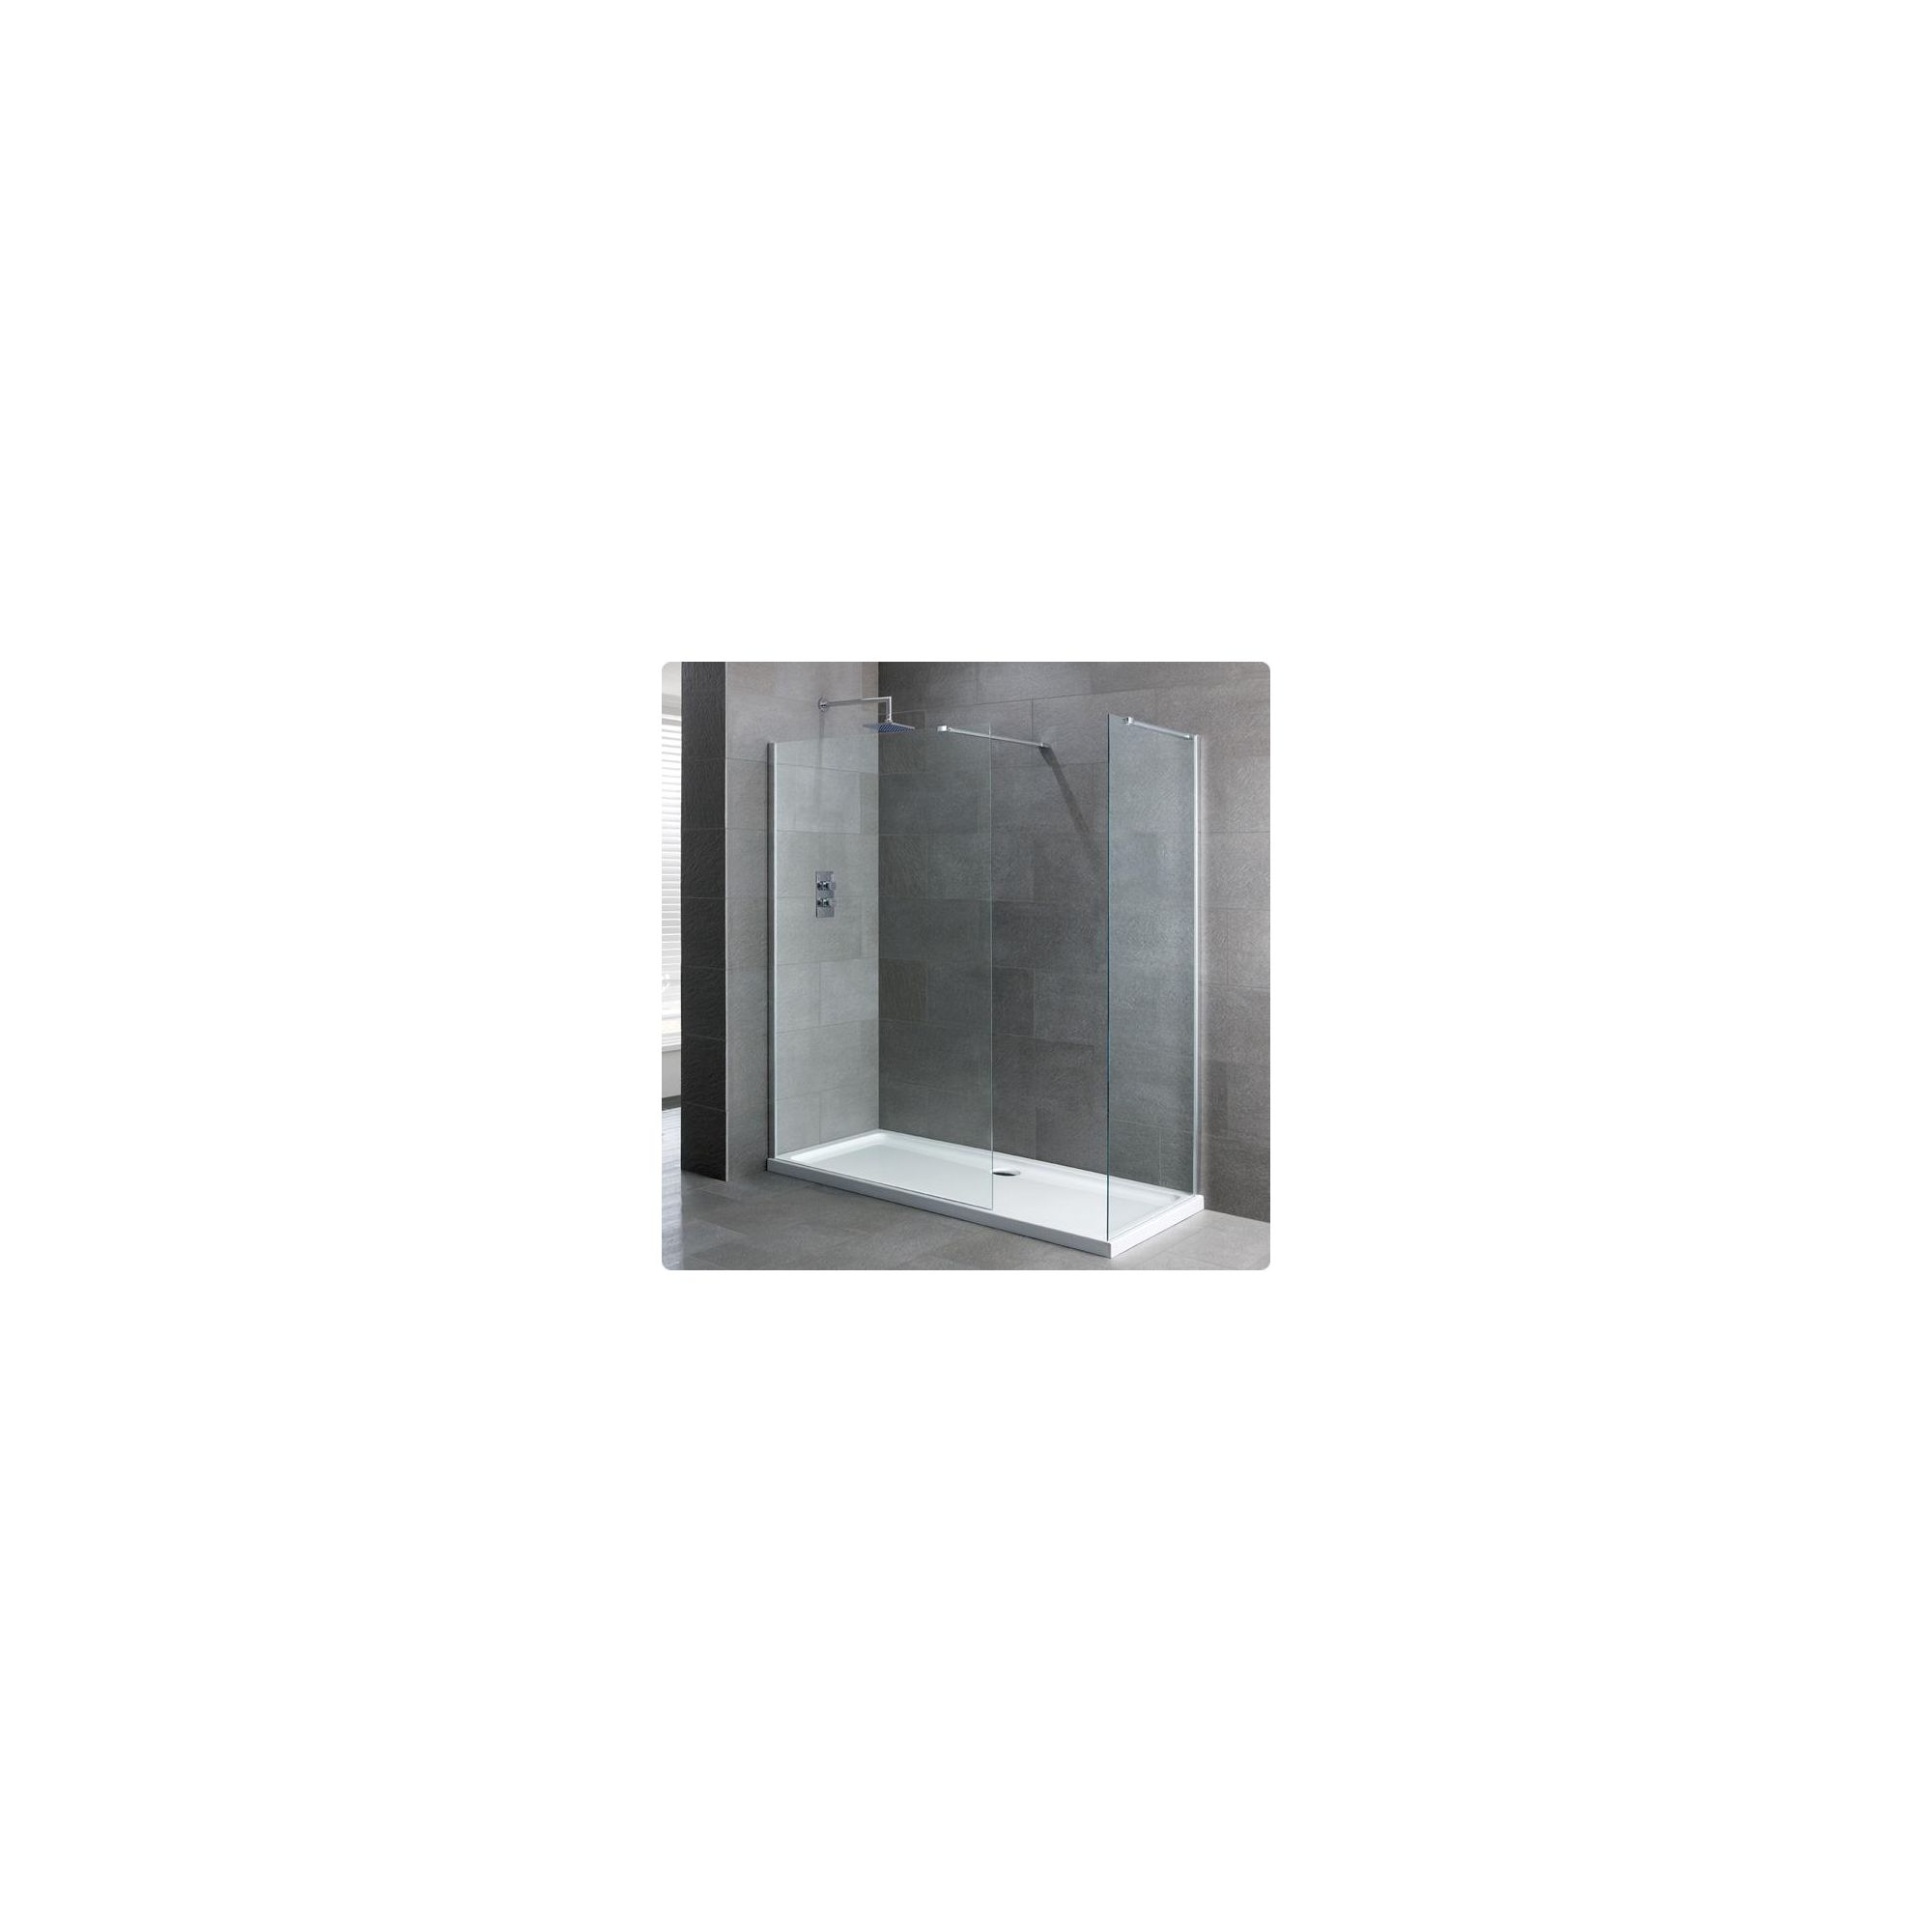 Duchy Select Silver Walk-In Shower Enclosure 1500mm x 900mm, Standard Tray, 6mm Glass at Tesco Direct